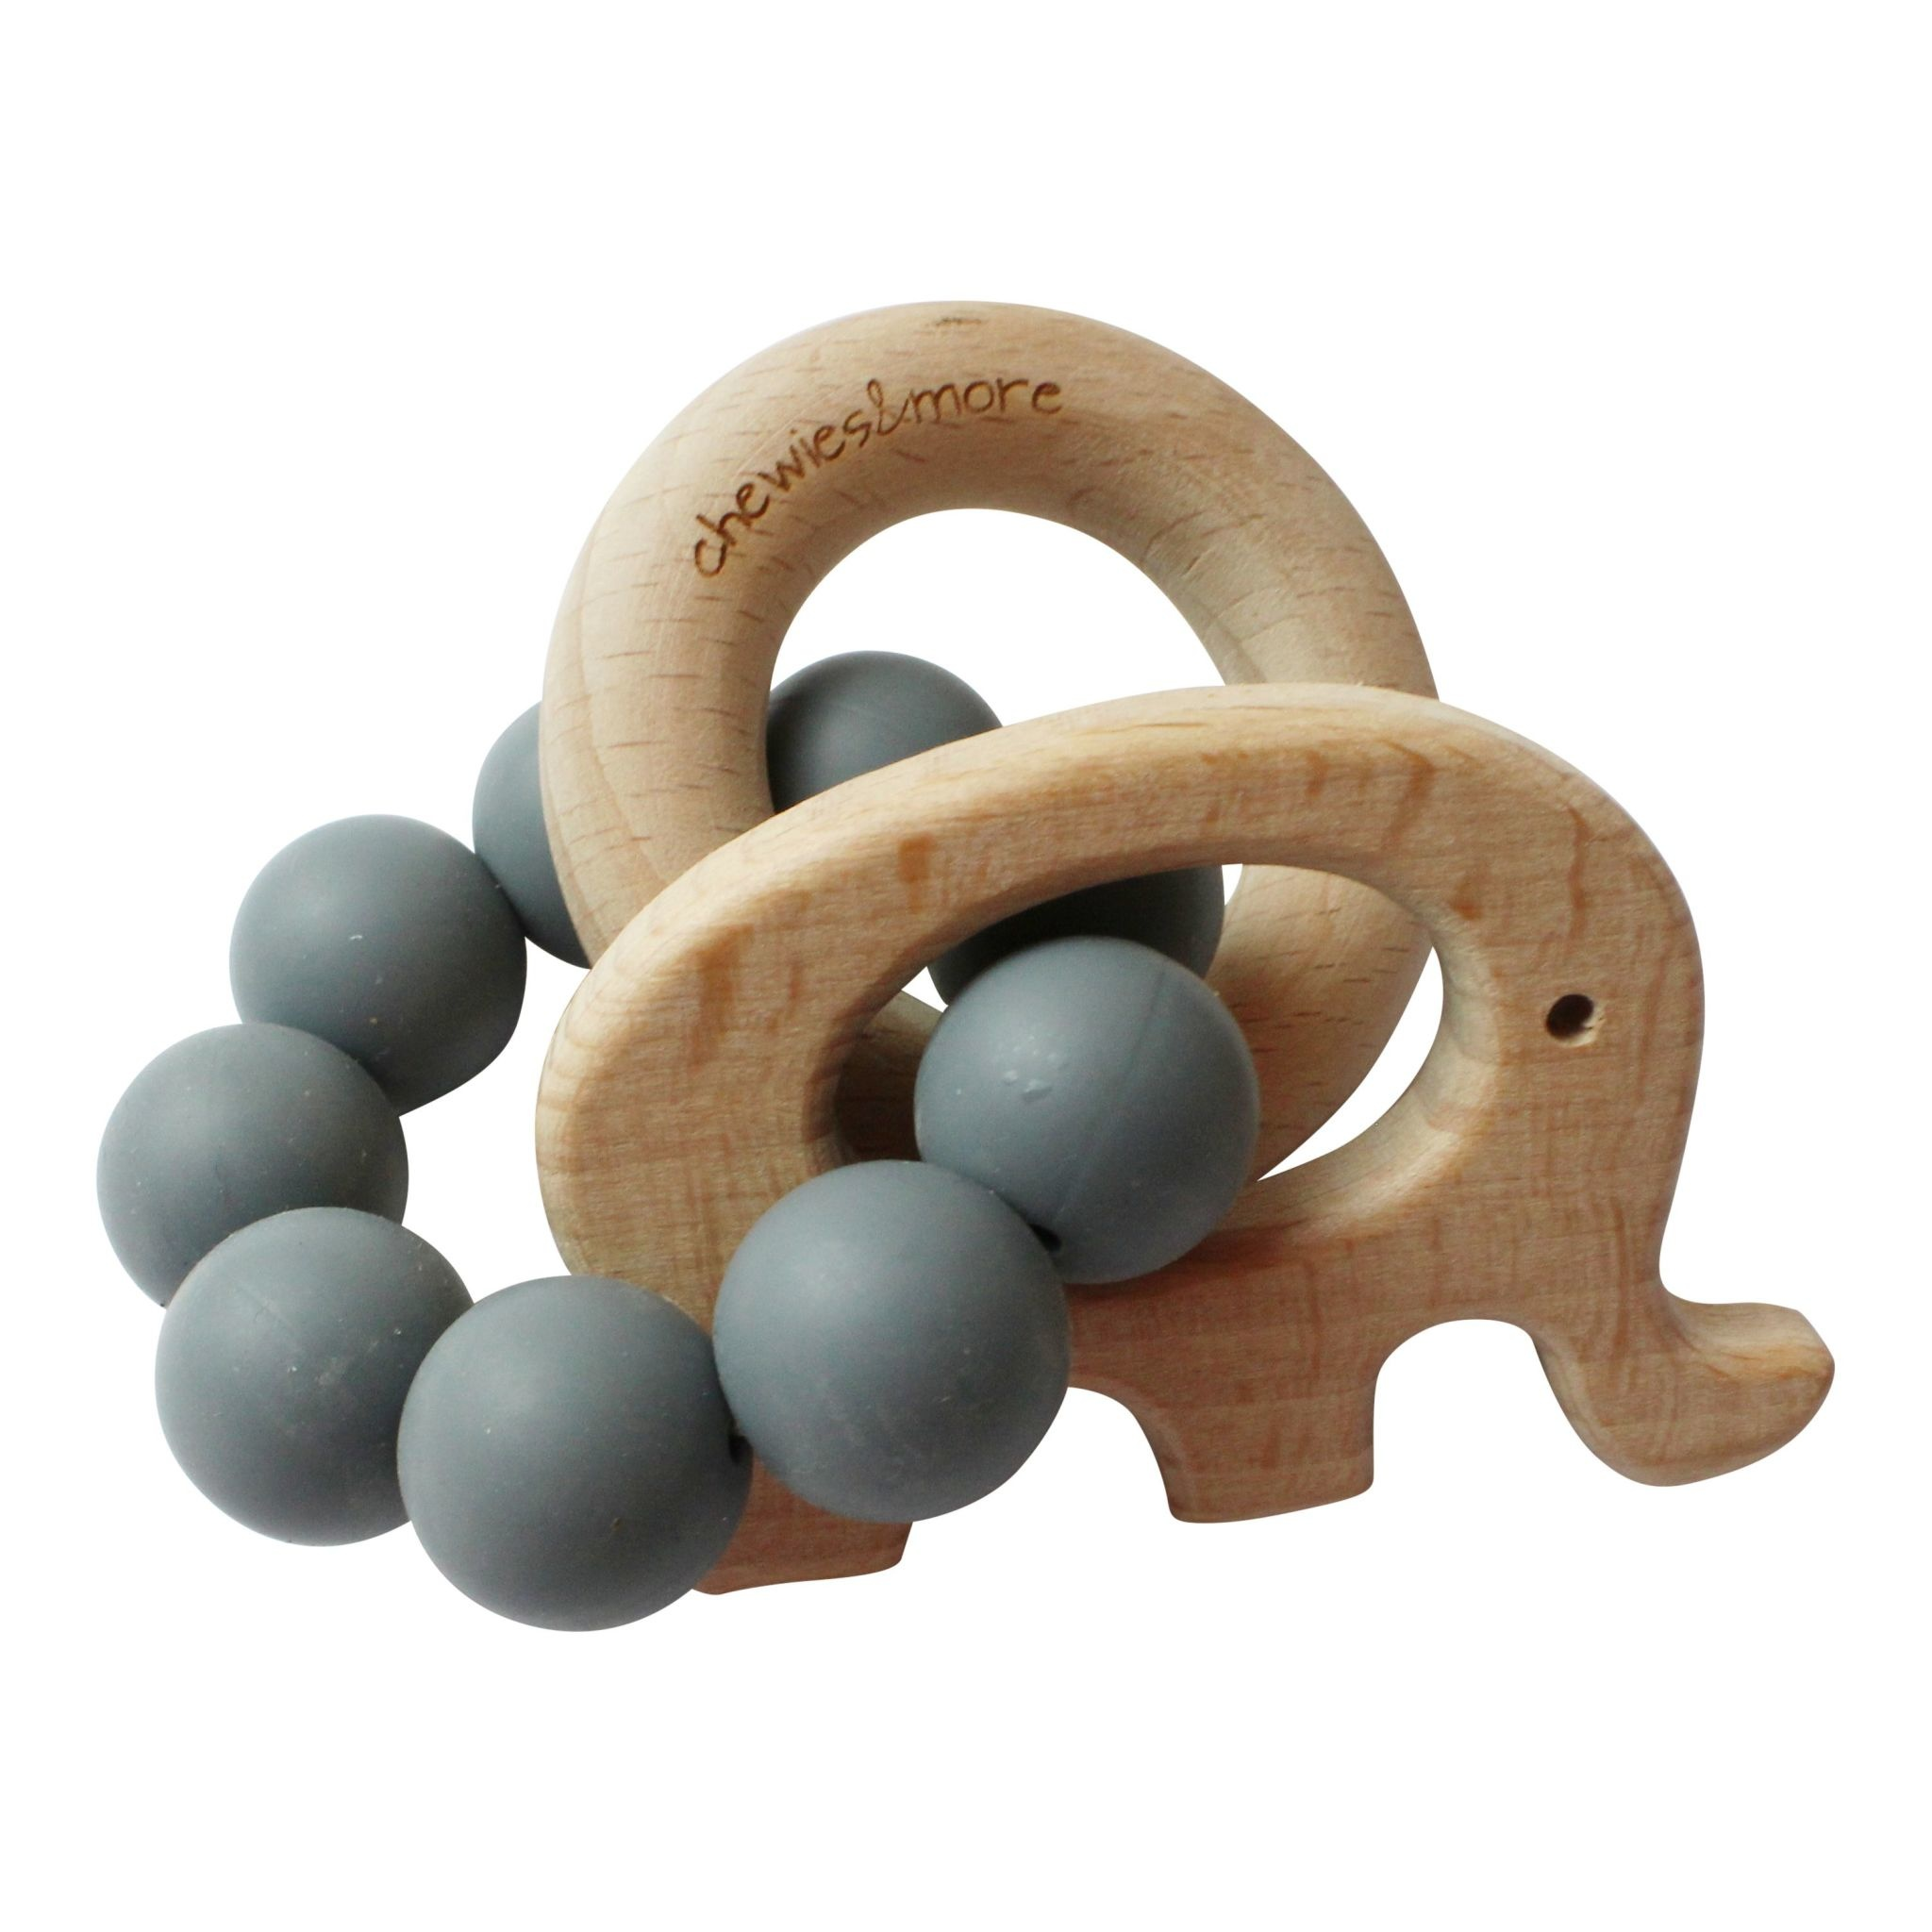 Chewies & More Play Rattle Elephant - Donkergrijs